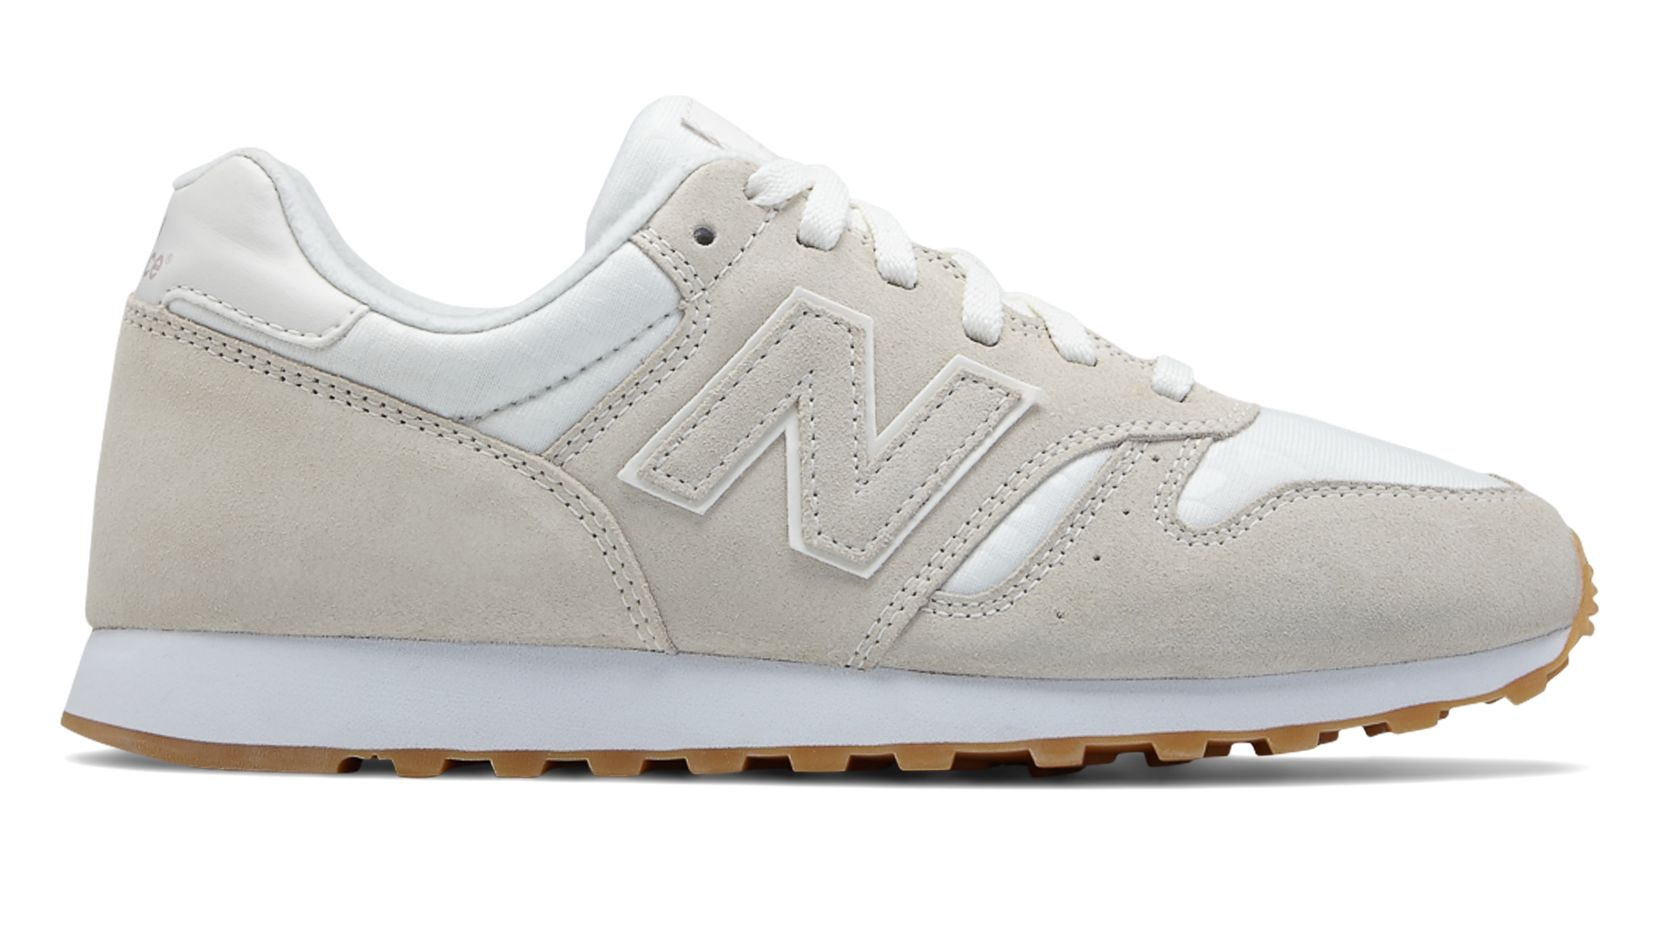 new balance 373 suede cream